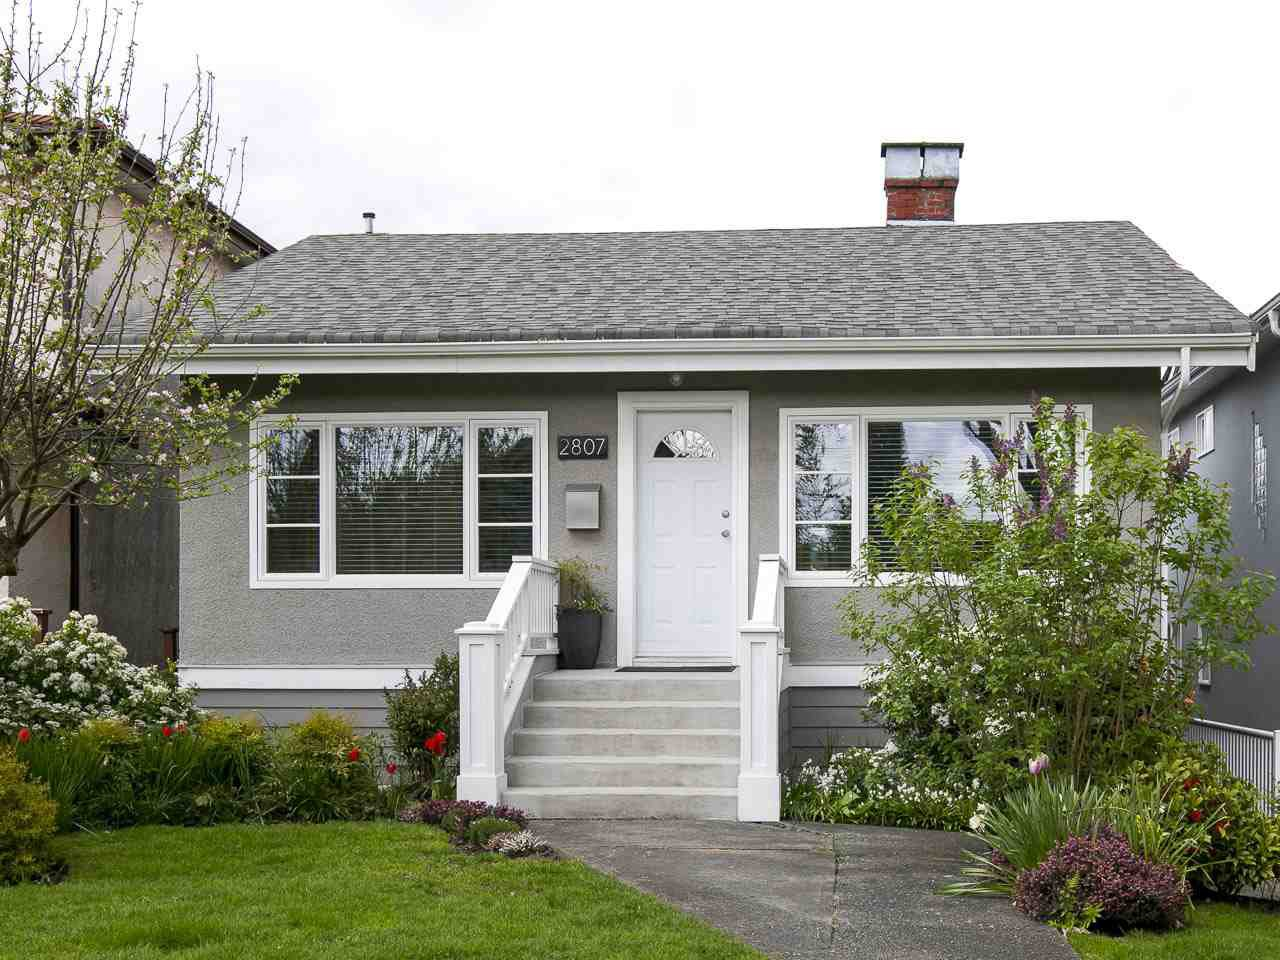 Main Photo: 2807 ETON STREET in Vancouver: Hastings East House for sale (Vancouver East)  : MLS®# R2058738